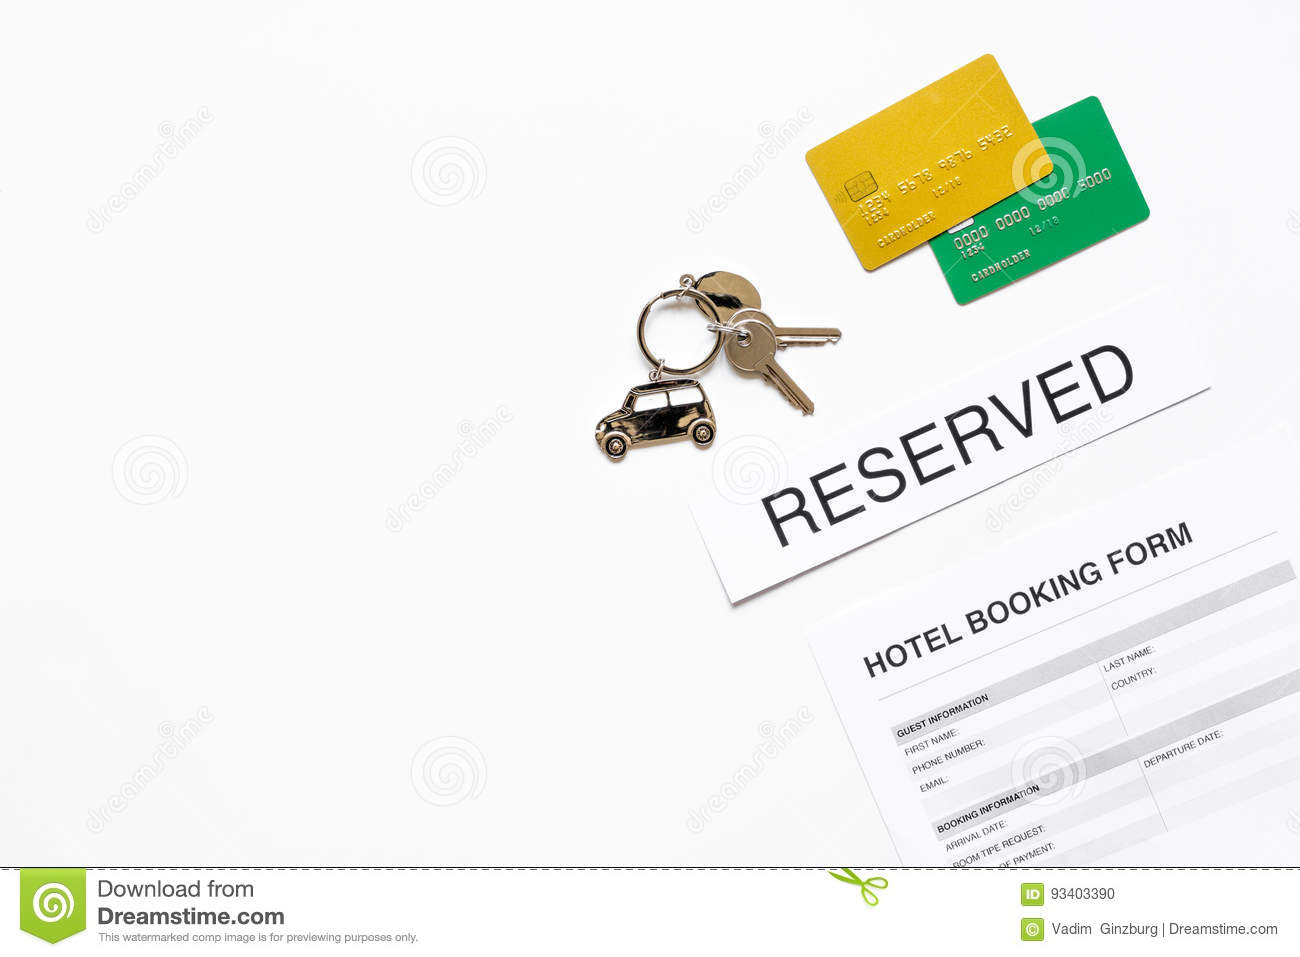 Booking form for hotel room reservation white background top view download booking form for hotel room reservation white background top view space for text stock photo thecheapjerseys Choice Image